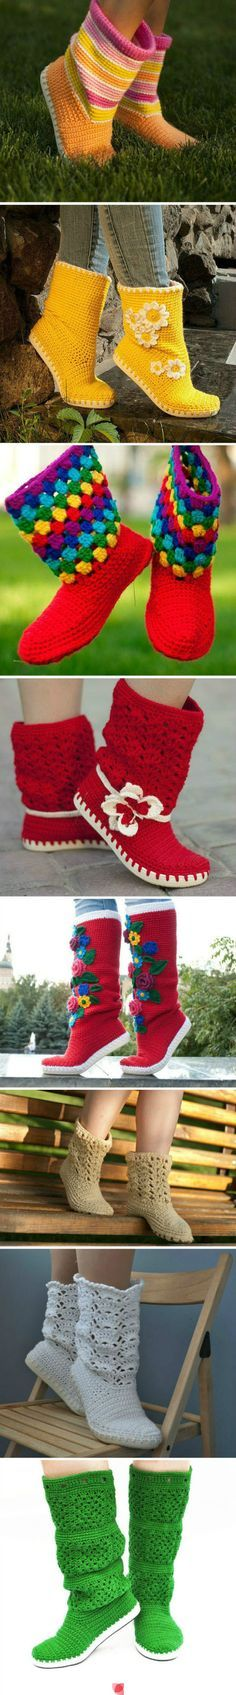 Yay, I found the source for these lovely boots! | örgü | Pinterest ...